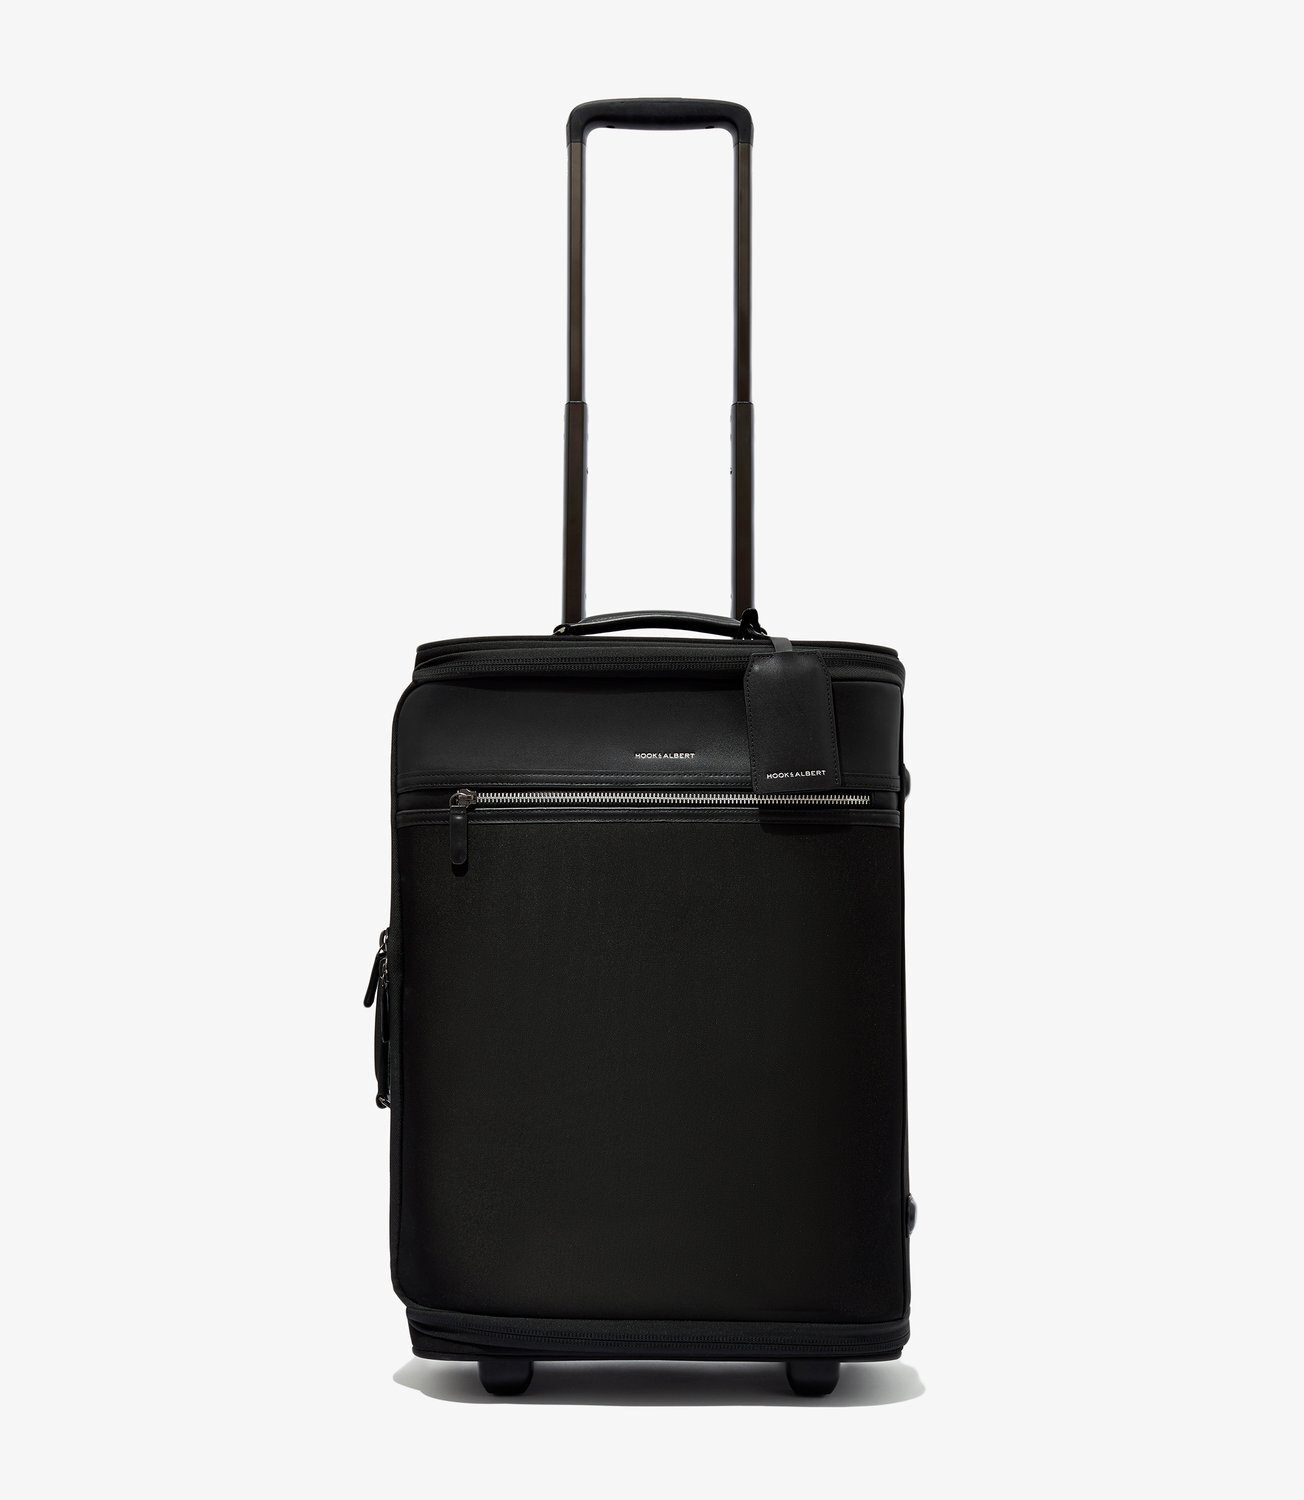 Soft Side Luggage - BLACK GARMENT LUGGAGE CARRY-ON by Hook & Albert